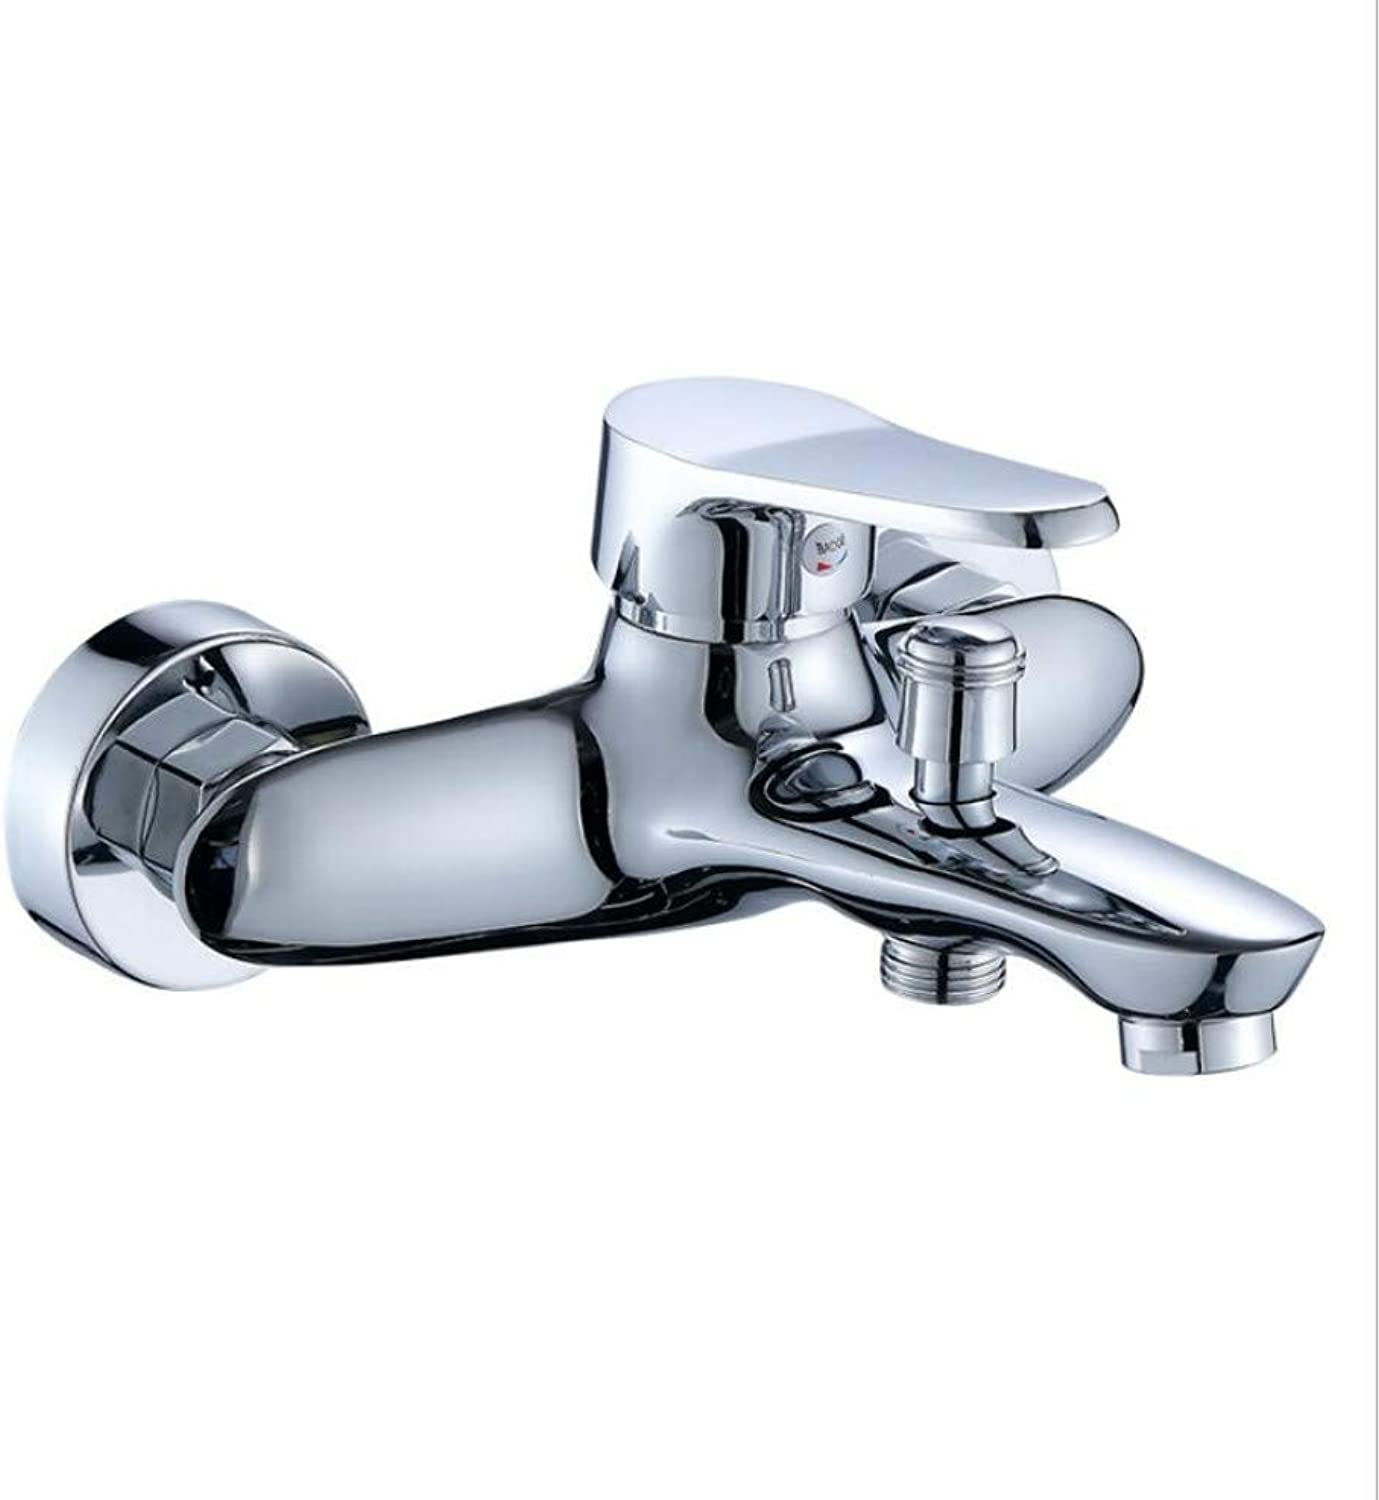 Bathroom Sink Basin Lever Mixer Tap Sanitary Shower Cold and Hot Tap Copper Shower Triple